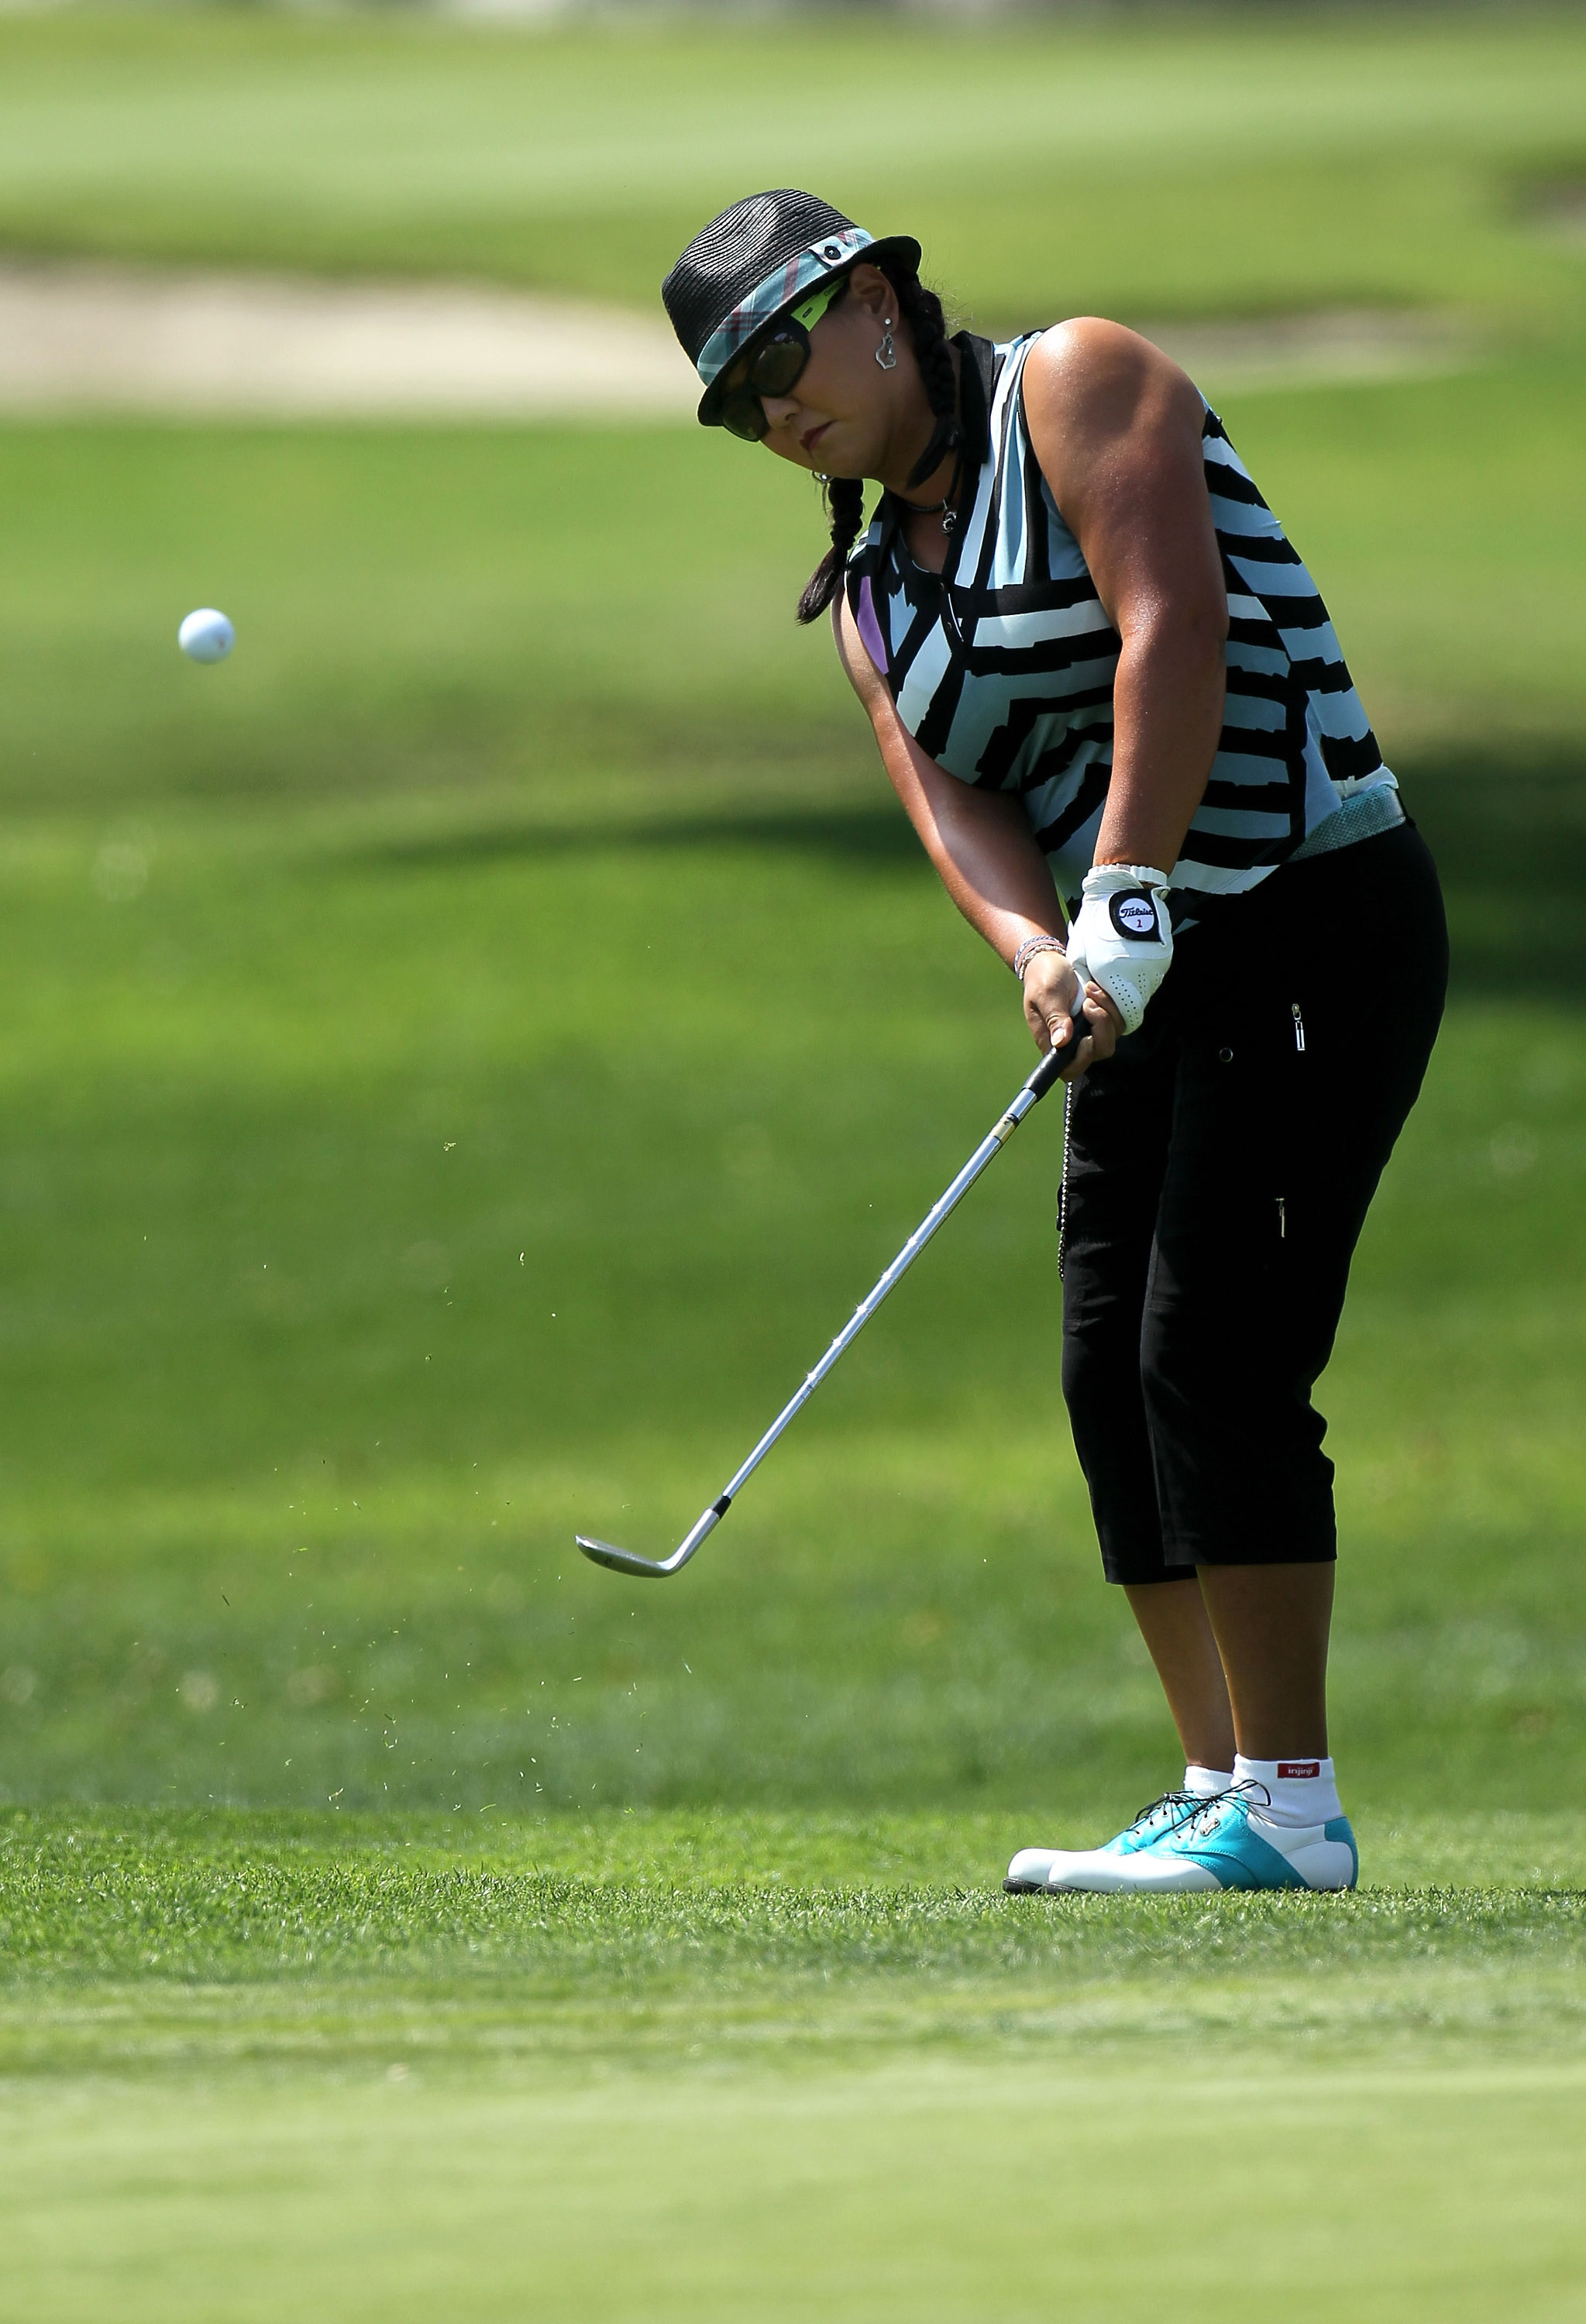 Christina Kim is donning a new look this week at the Kia Classic.